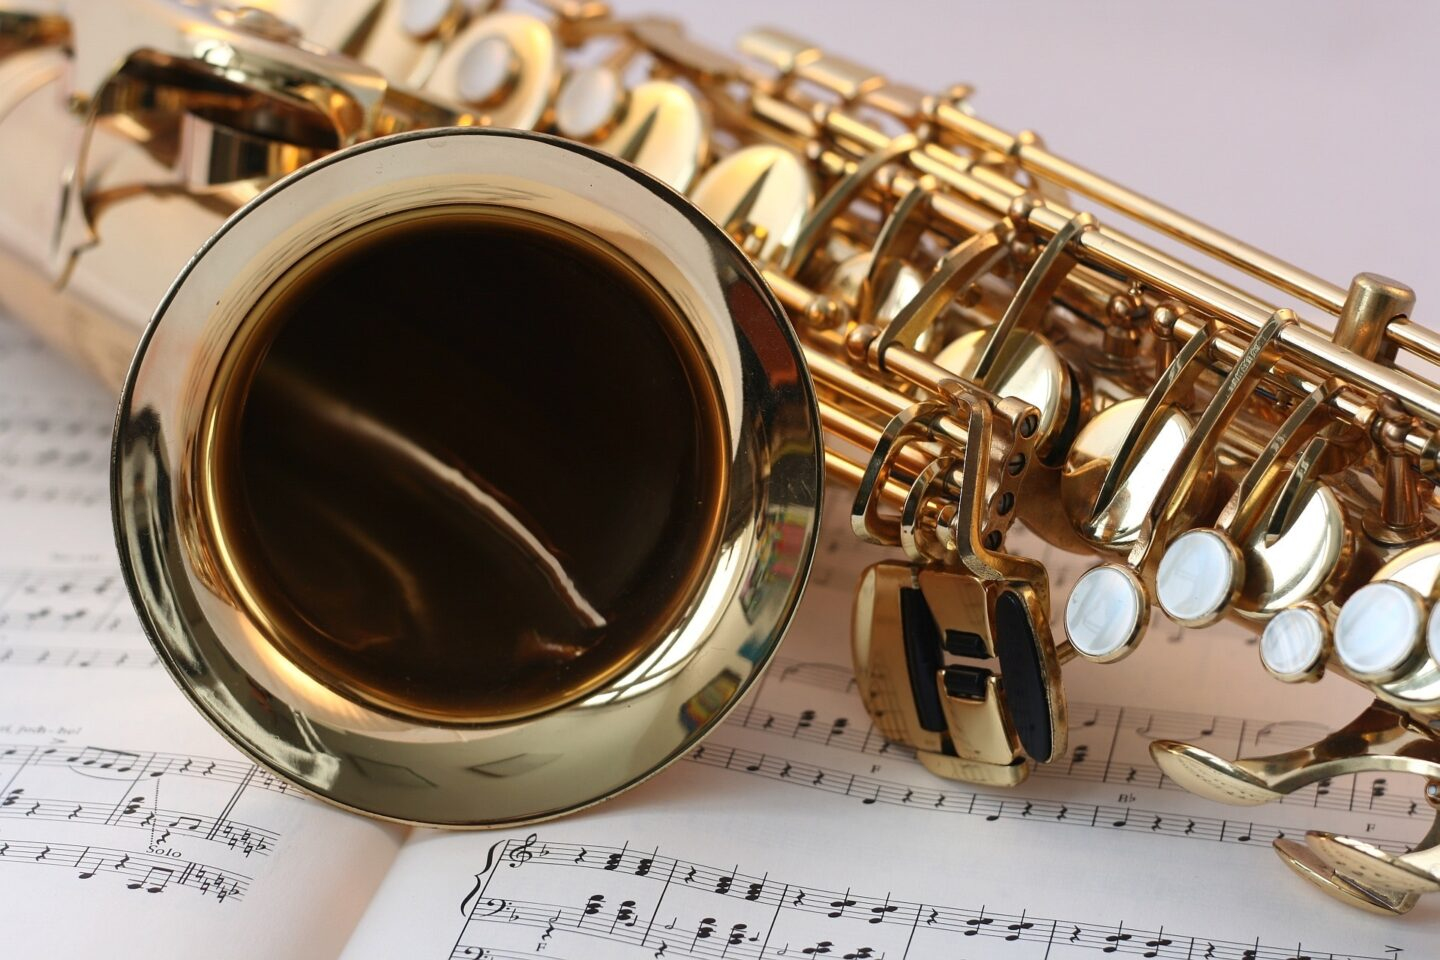 Playing Musical Instruments A Day Can Keep The Doctor Away